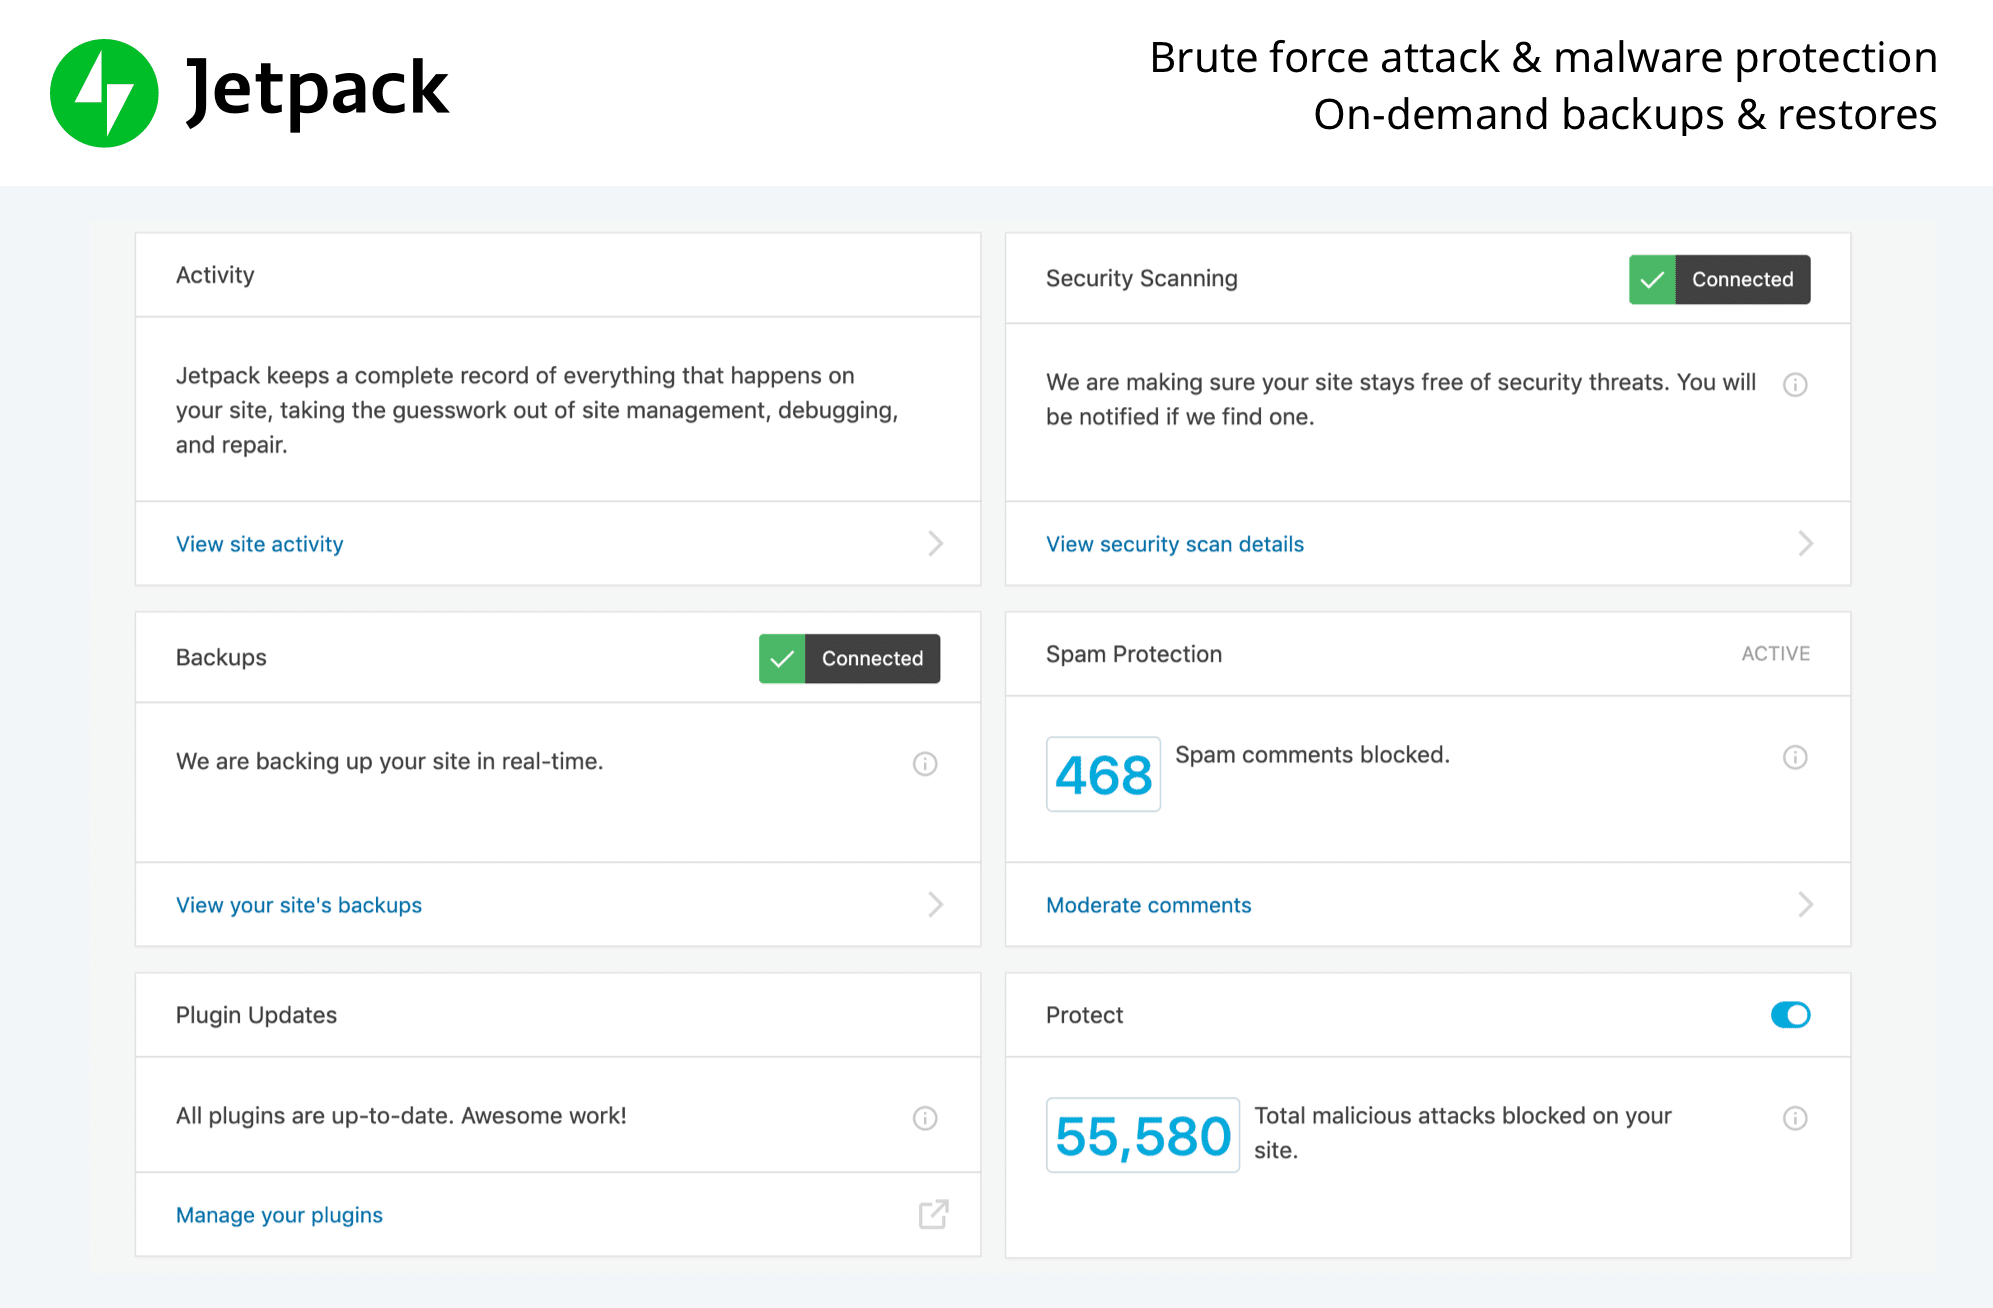 Always-on Security. Keep your site totally backed up in real-time with no storage limits and one-click restores. Prevent unwanted intrusions with effective brute force attack protection, malware scanning, and spam filtering. Get alerts about site downtime instantly. Introducing Jetpack Backup. Never lose a word, image, page, or time worrying about your site. Jetpack Backup is the simplest way to keep your site exactly how you want it.